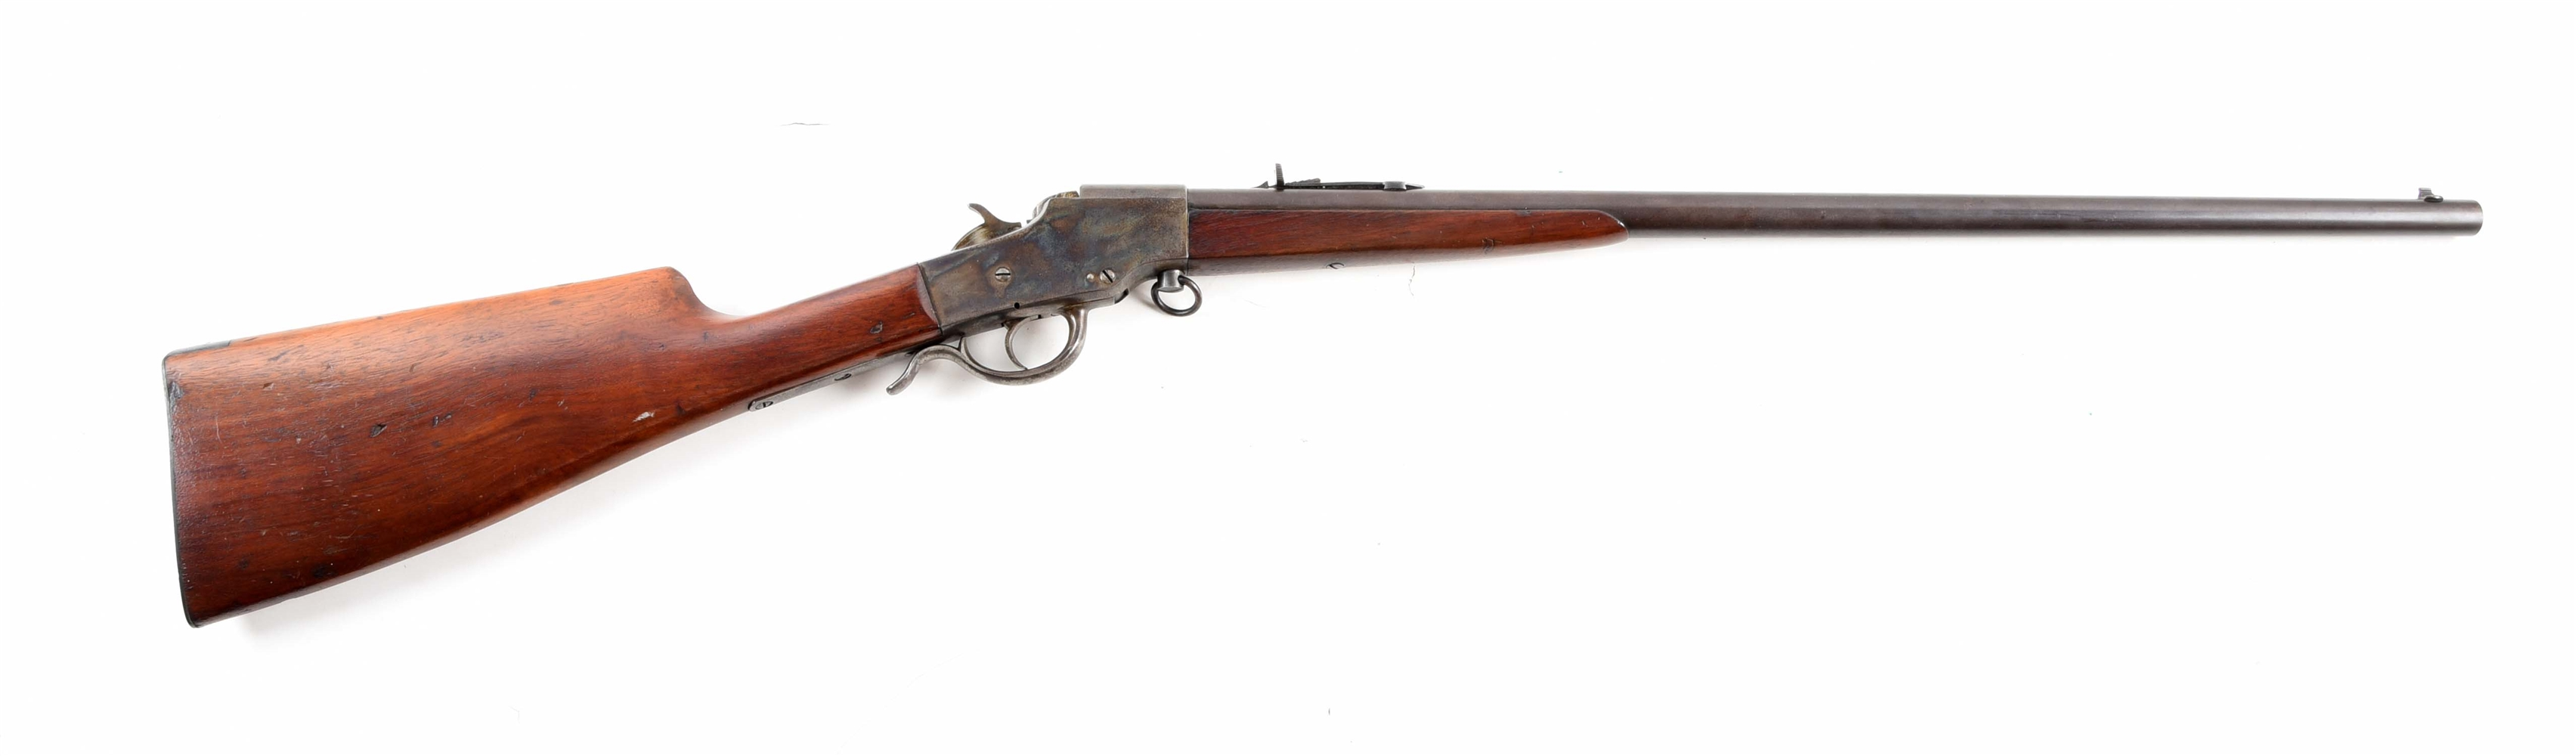 (C) HOPKINS & ALLEN NO. 925 FALLING BLOCK SINGLE SHOT RIFLE.